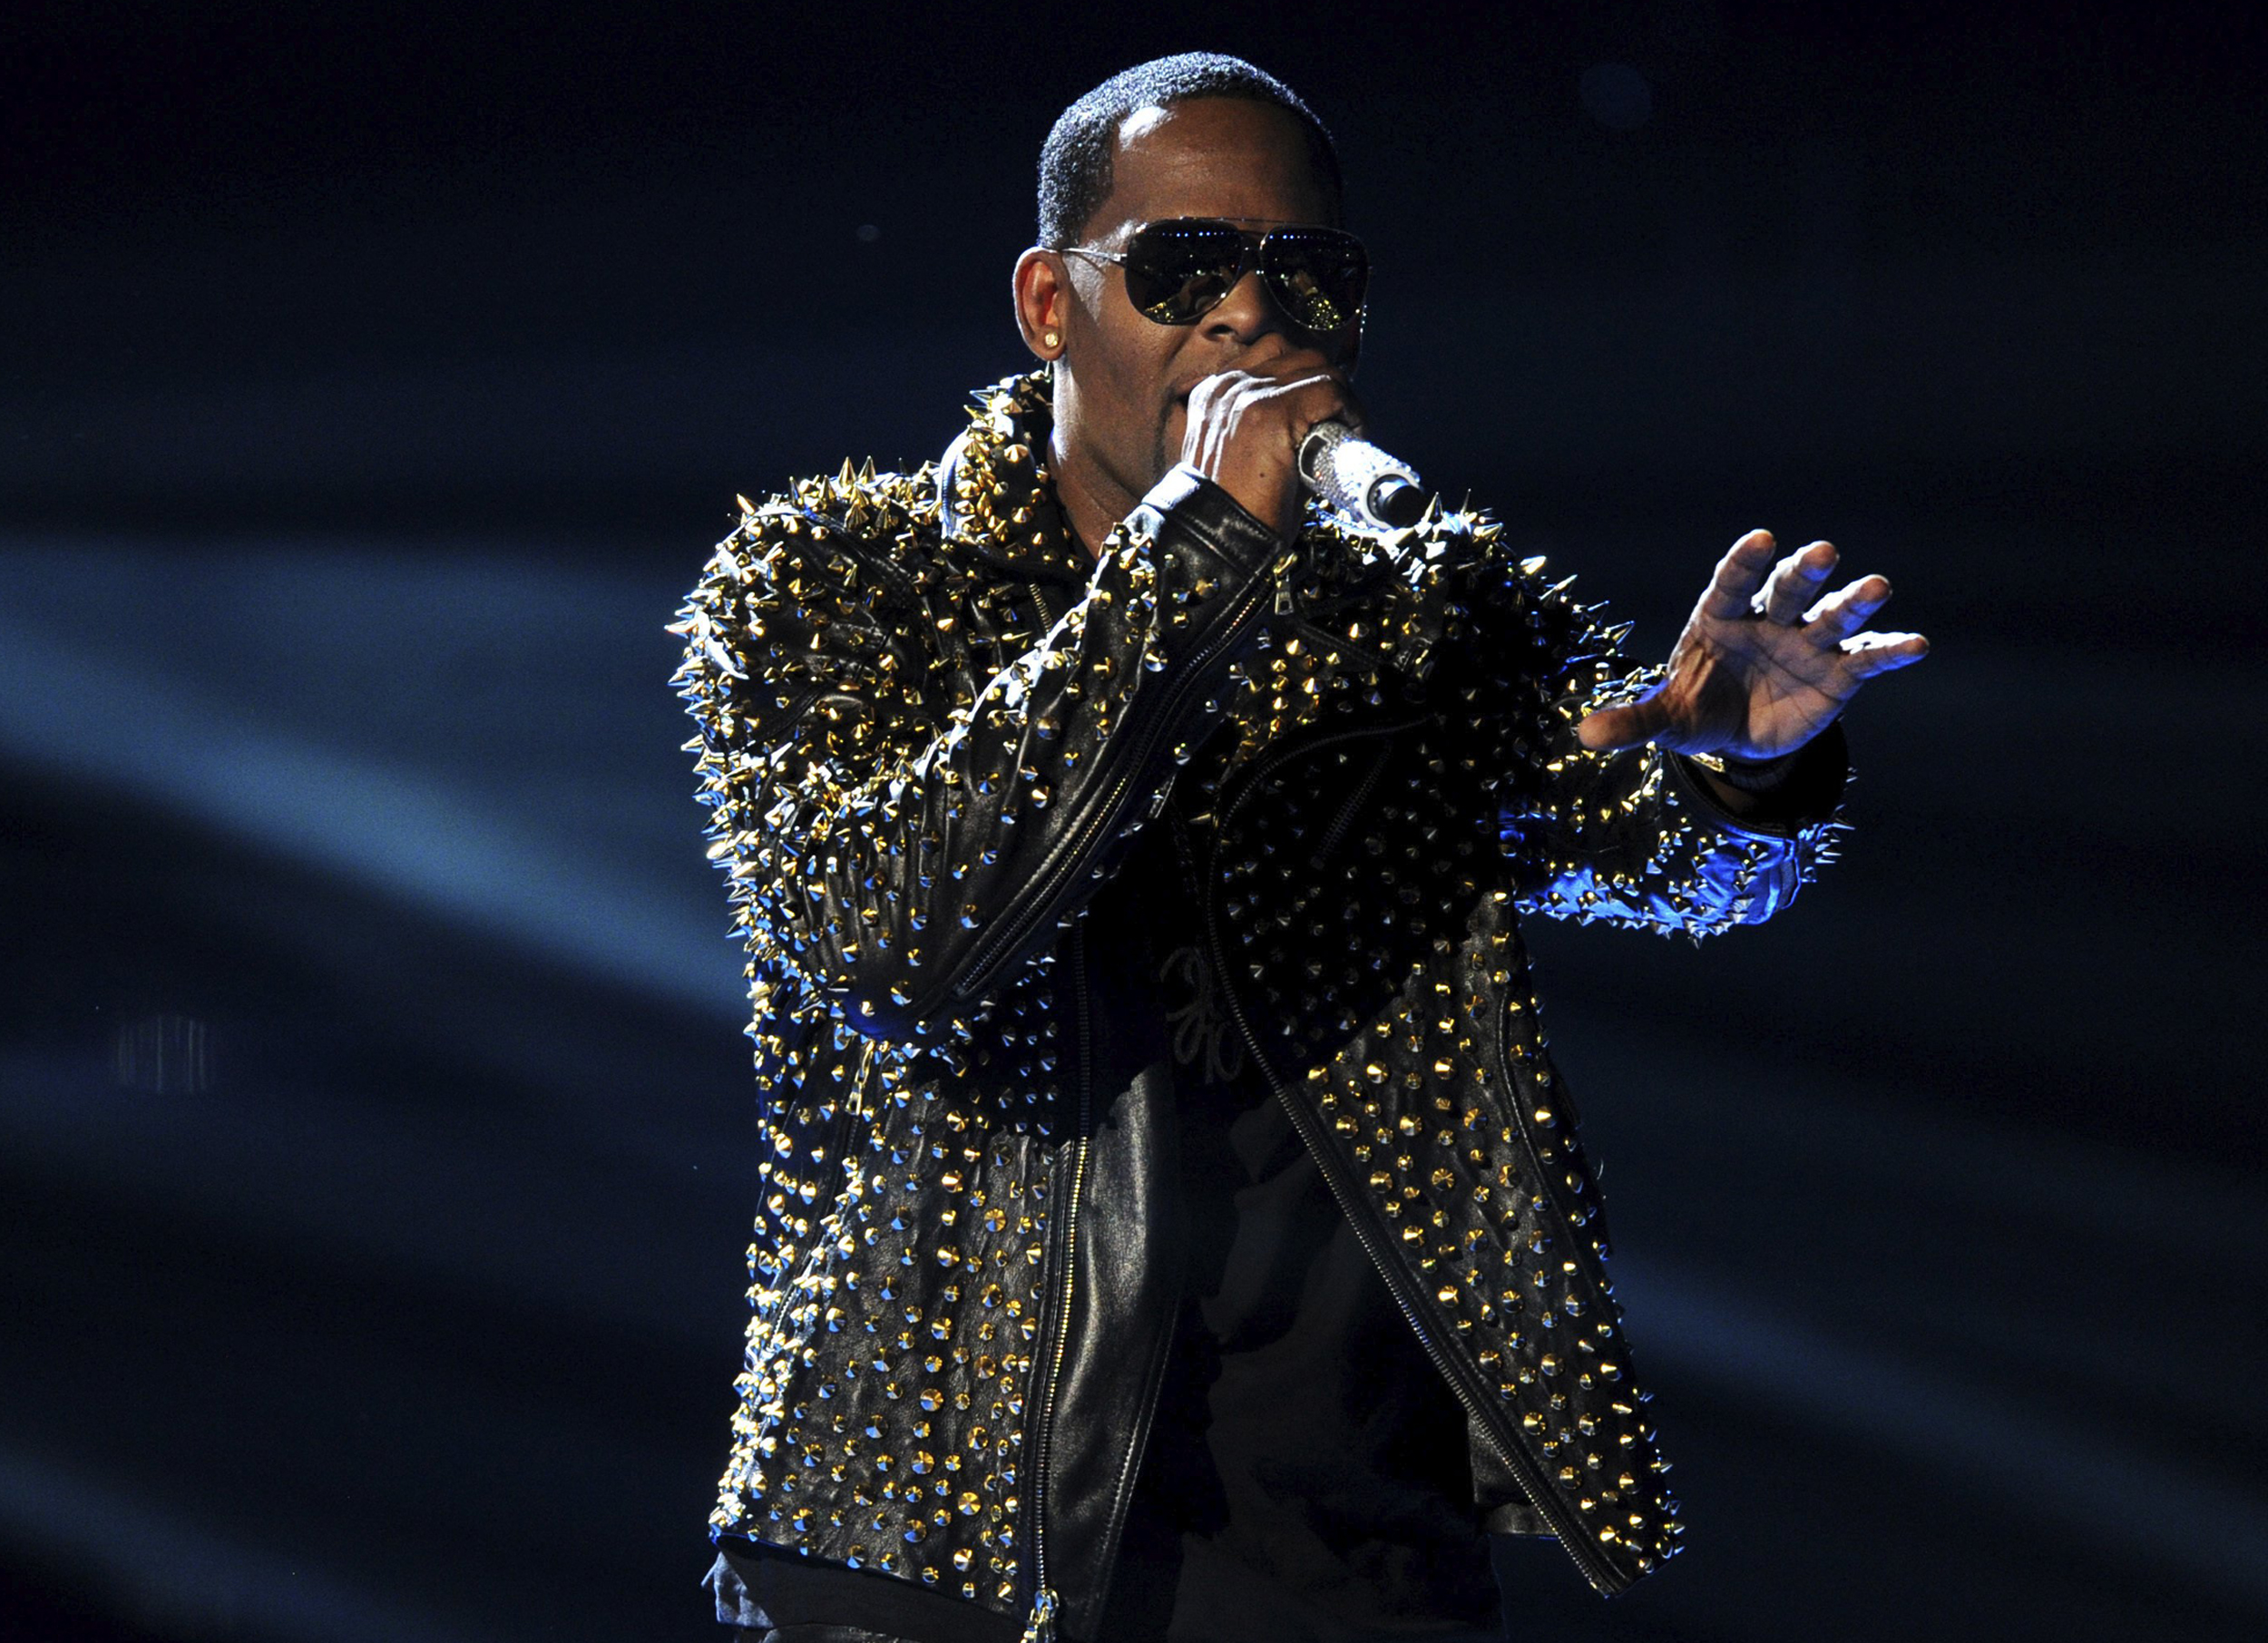 Illinois-refuses-permit-for-concert-to-be-hosted-by-R.-Kelly